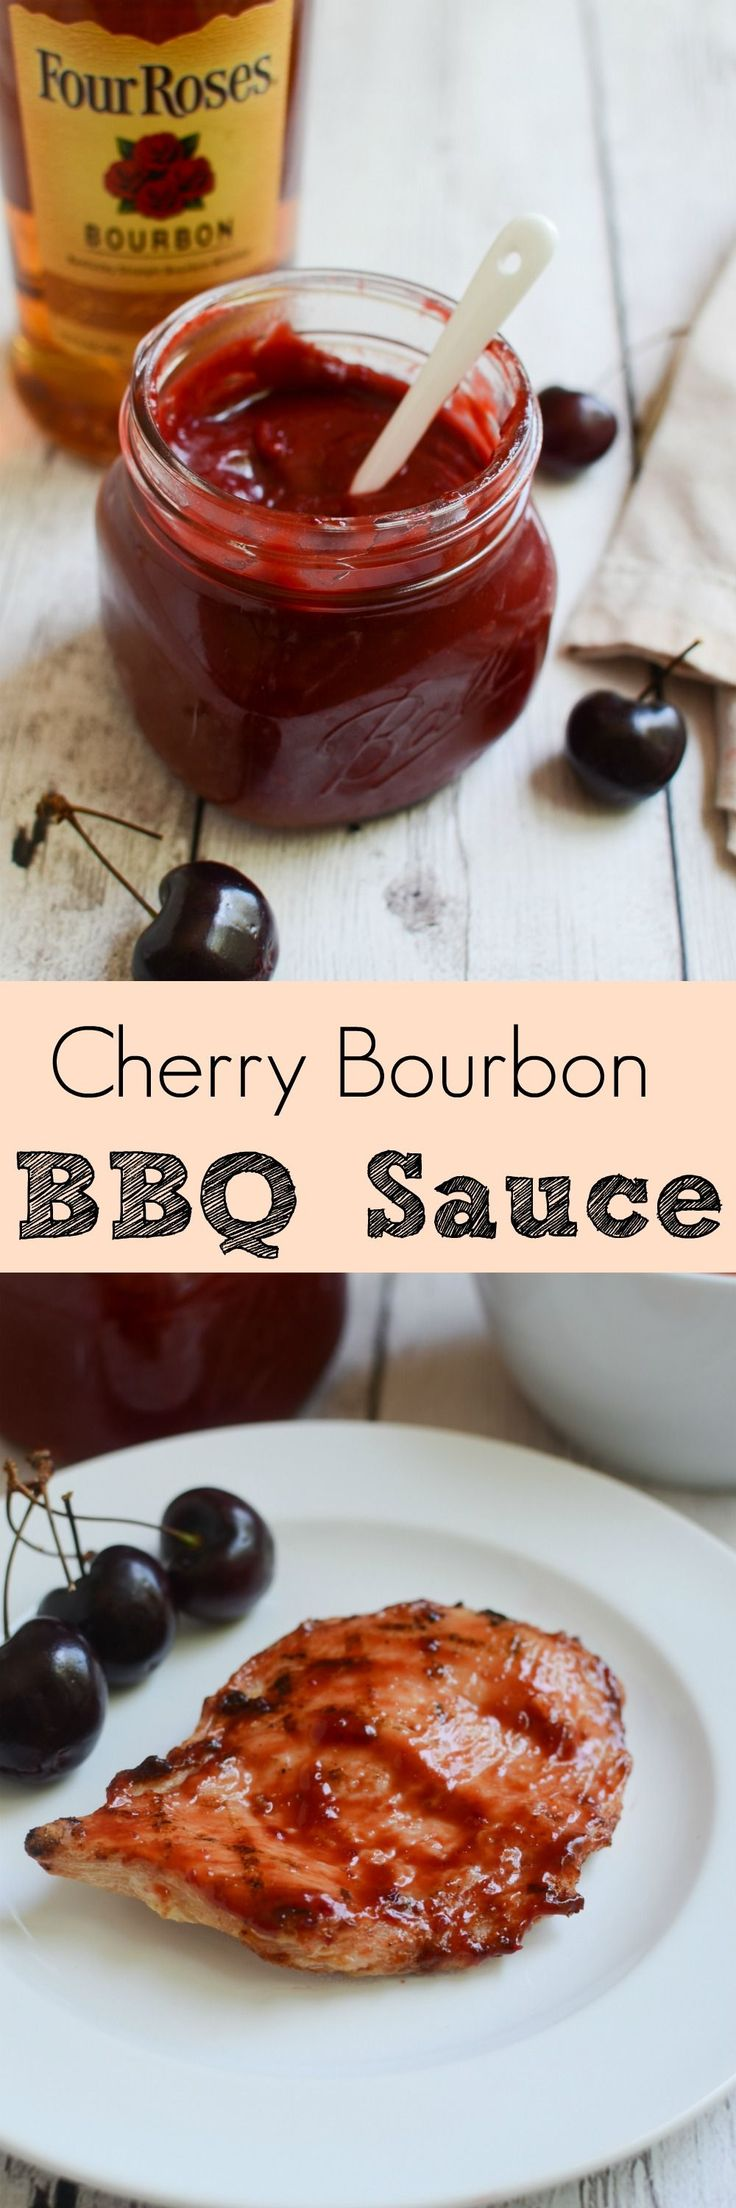 Cherry Bourbon BBQ Sauce - delicious sweet and spicy barbecue sauce ...